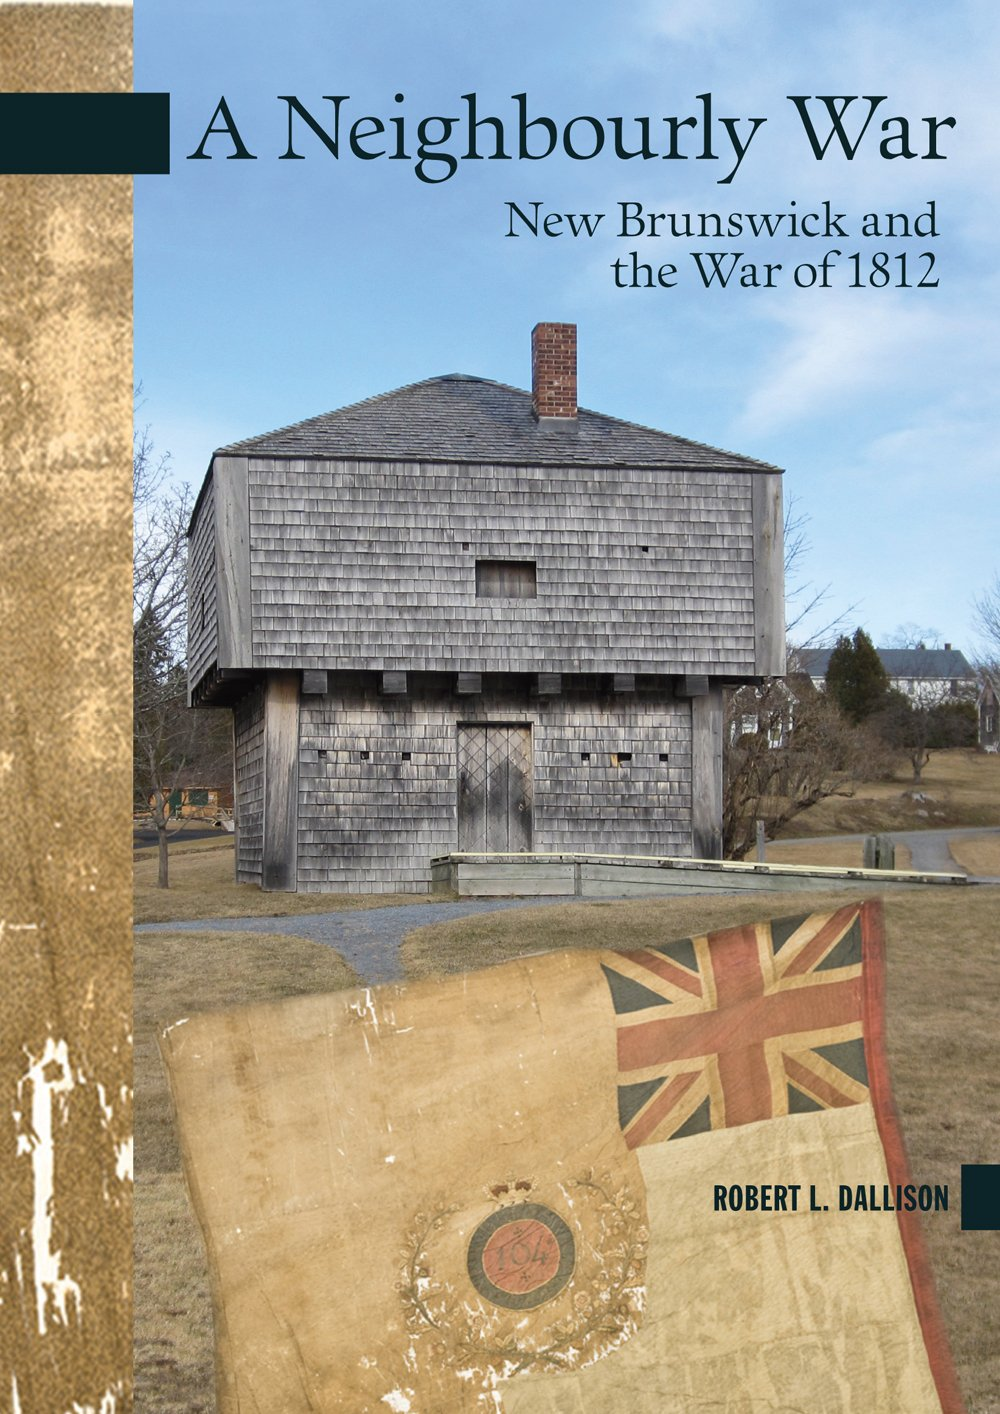 A Neighbourly War: New Brunswick and the War of 1812 (New Brunswick Military Heritage) pdf epub